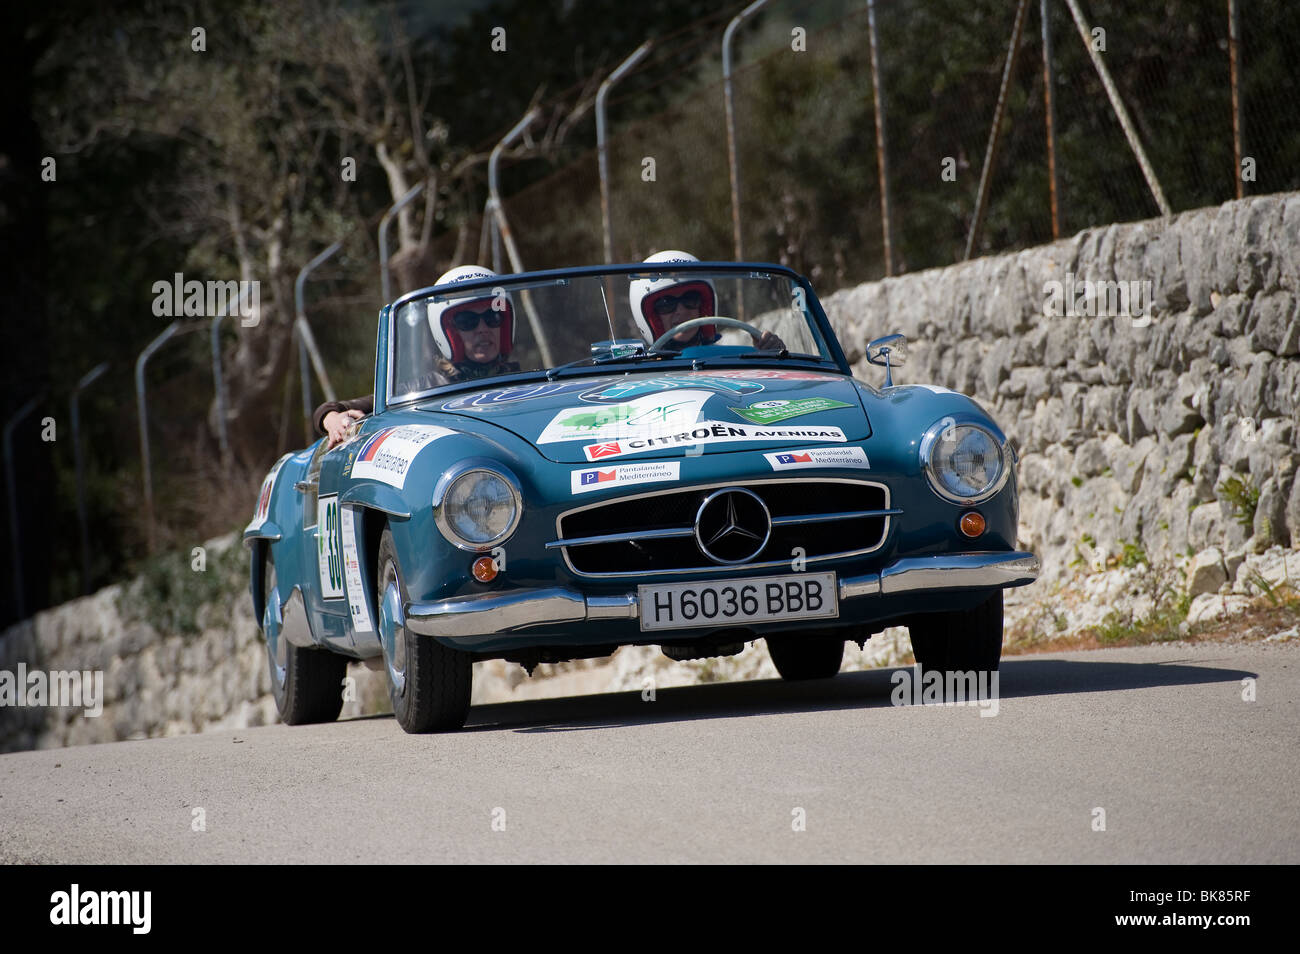 1955 Mercedes 190SL classic sports car taking part in a rally in ...